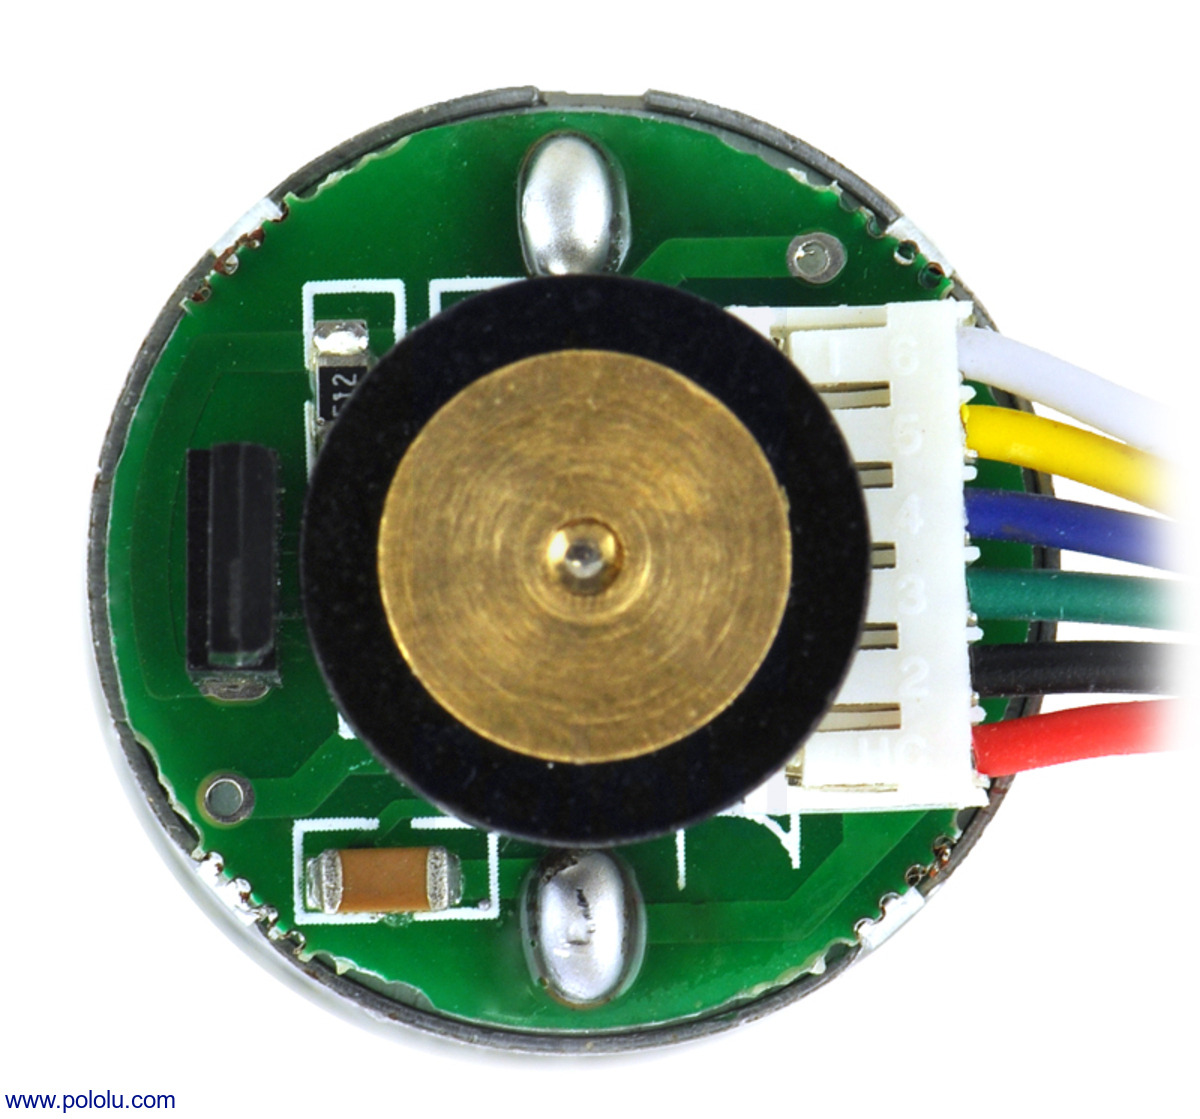 medium resolution of 25d mm metal gearmotor with 48 cpr encoder close up view of encoder